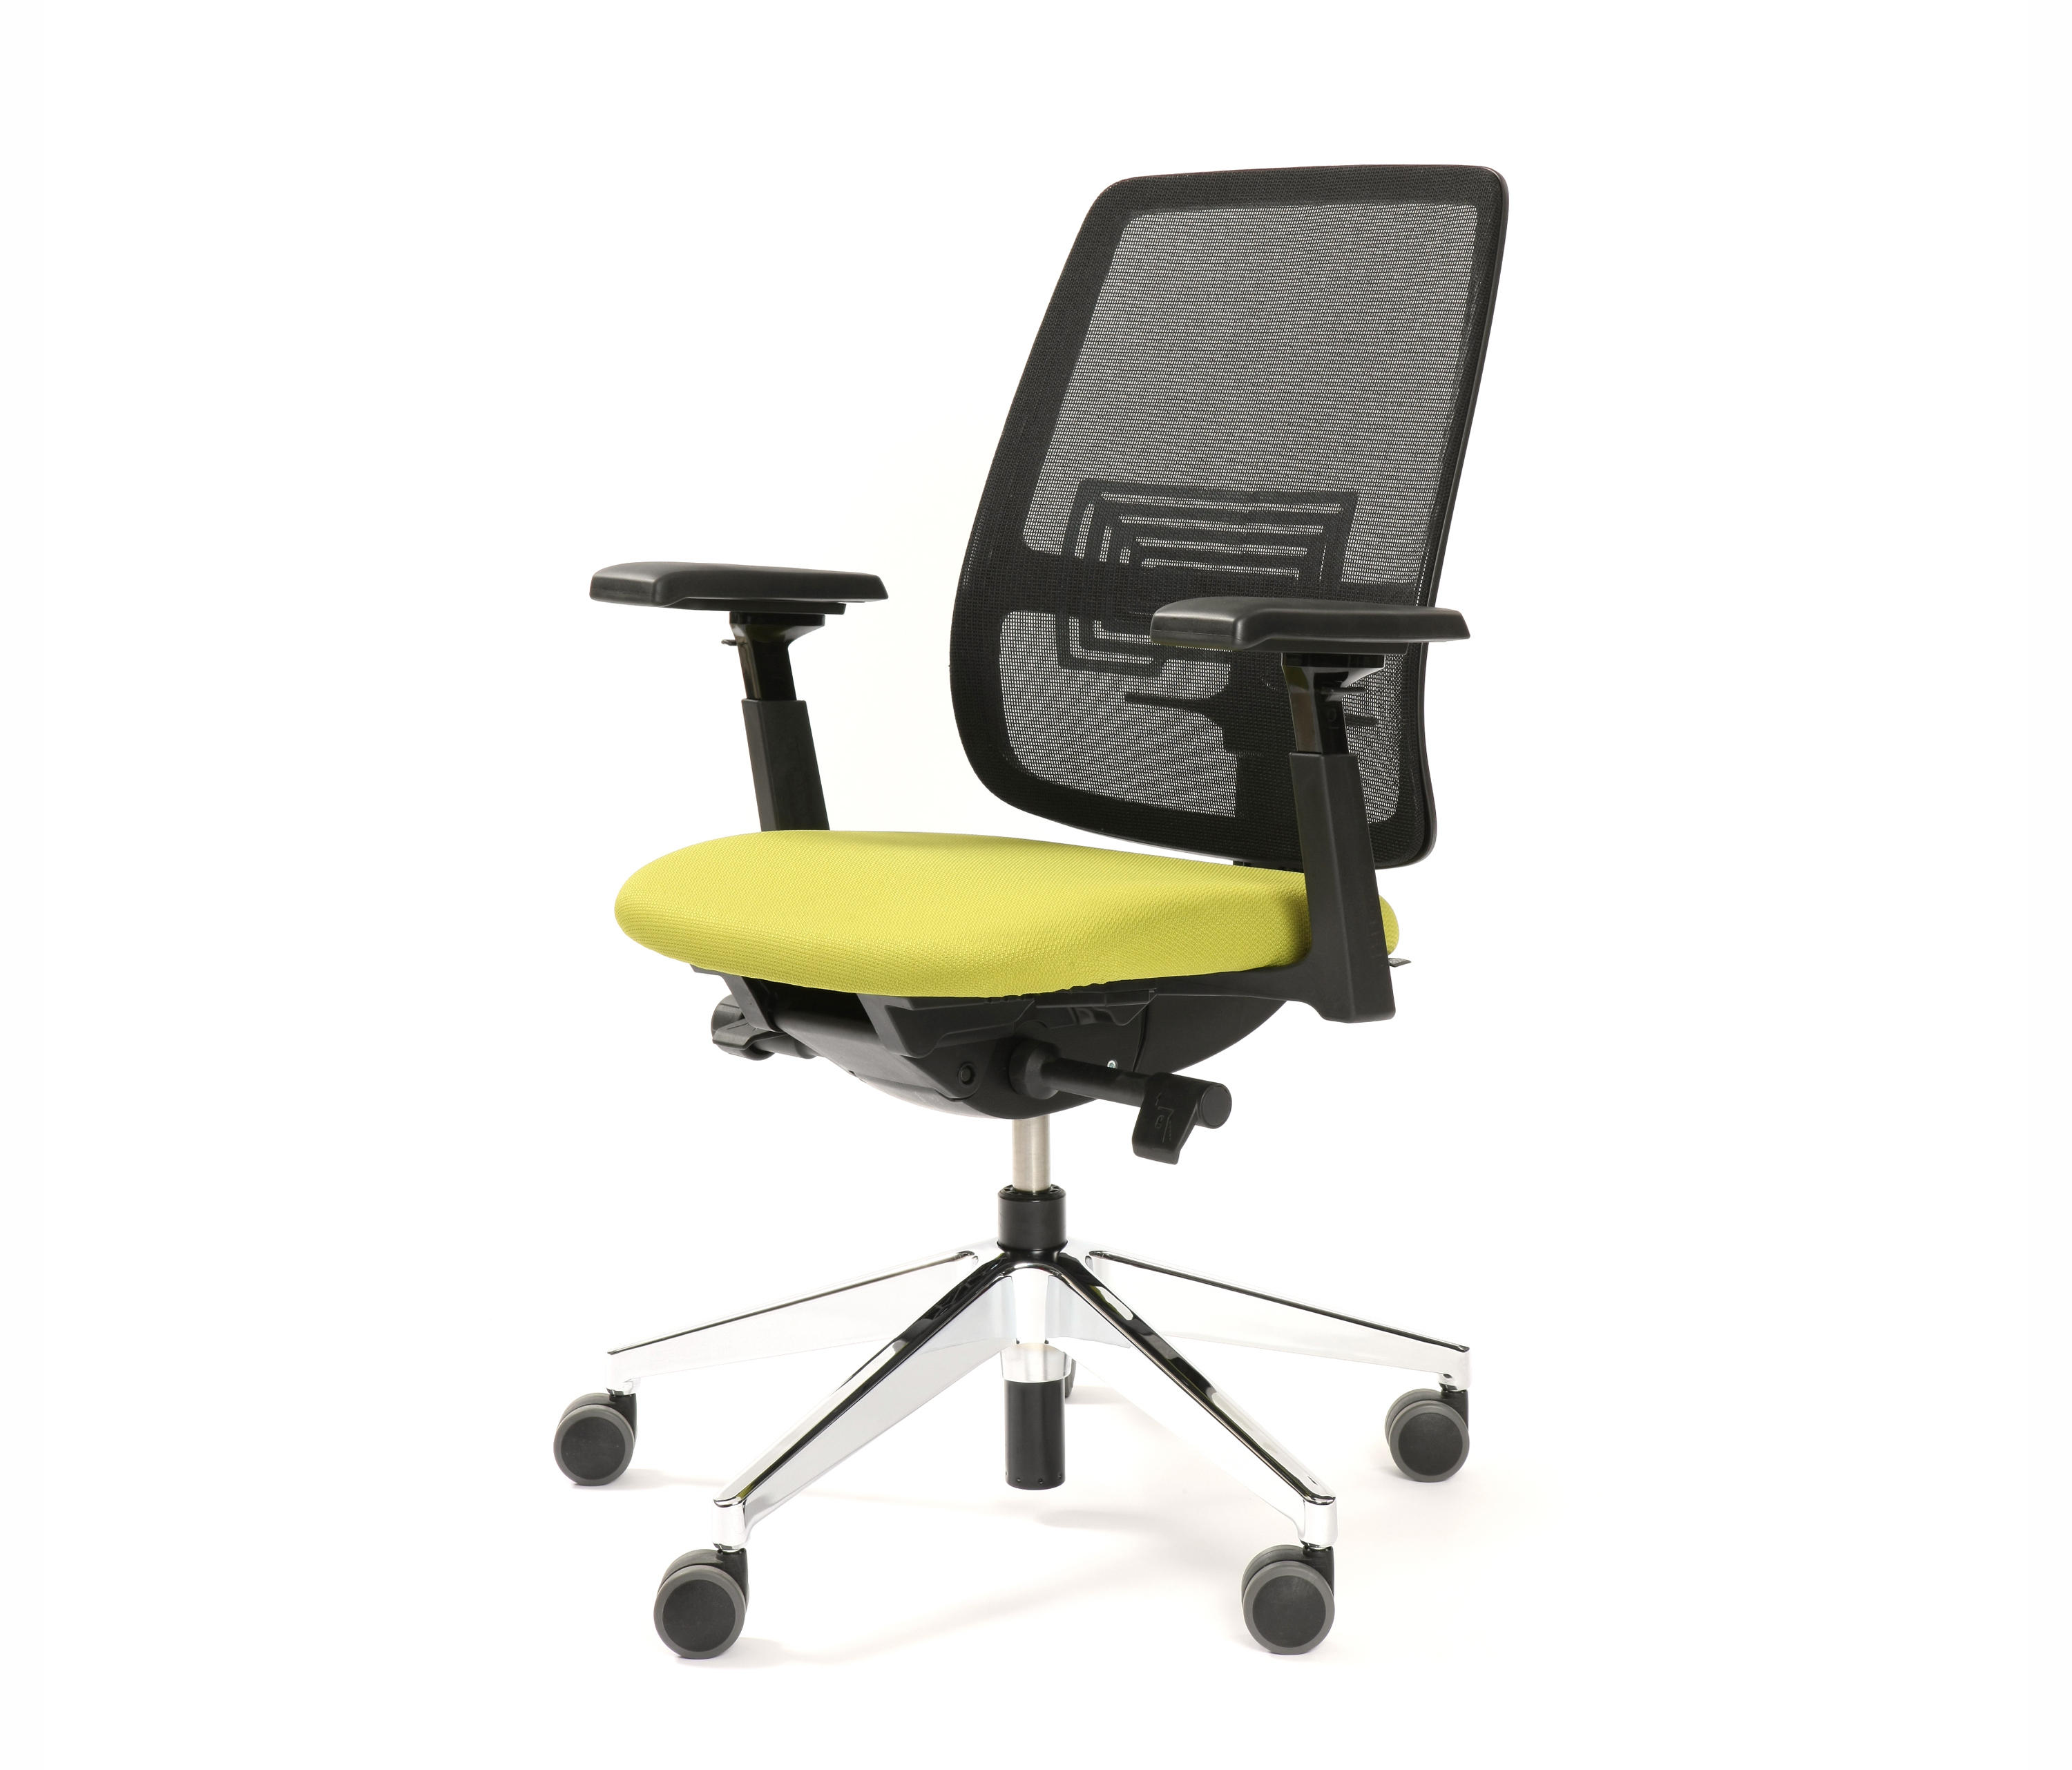 Swell Lively Office Chairs From Haworth Architonic Short Links Chair Design For Home Short Linksinfo